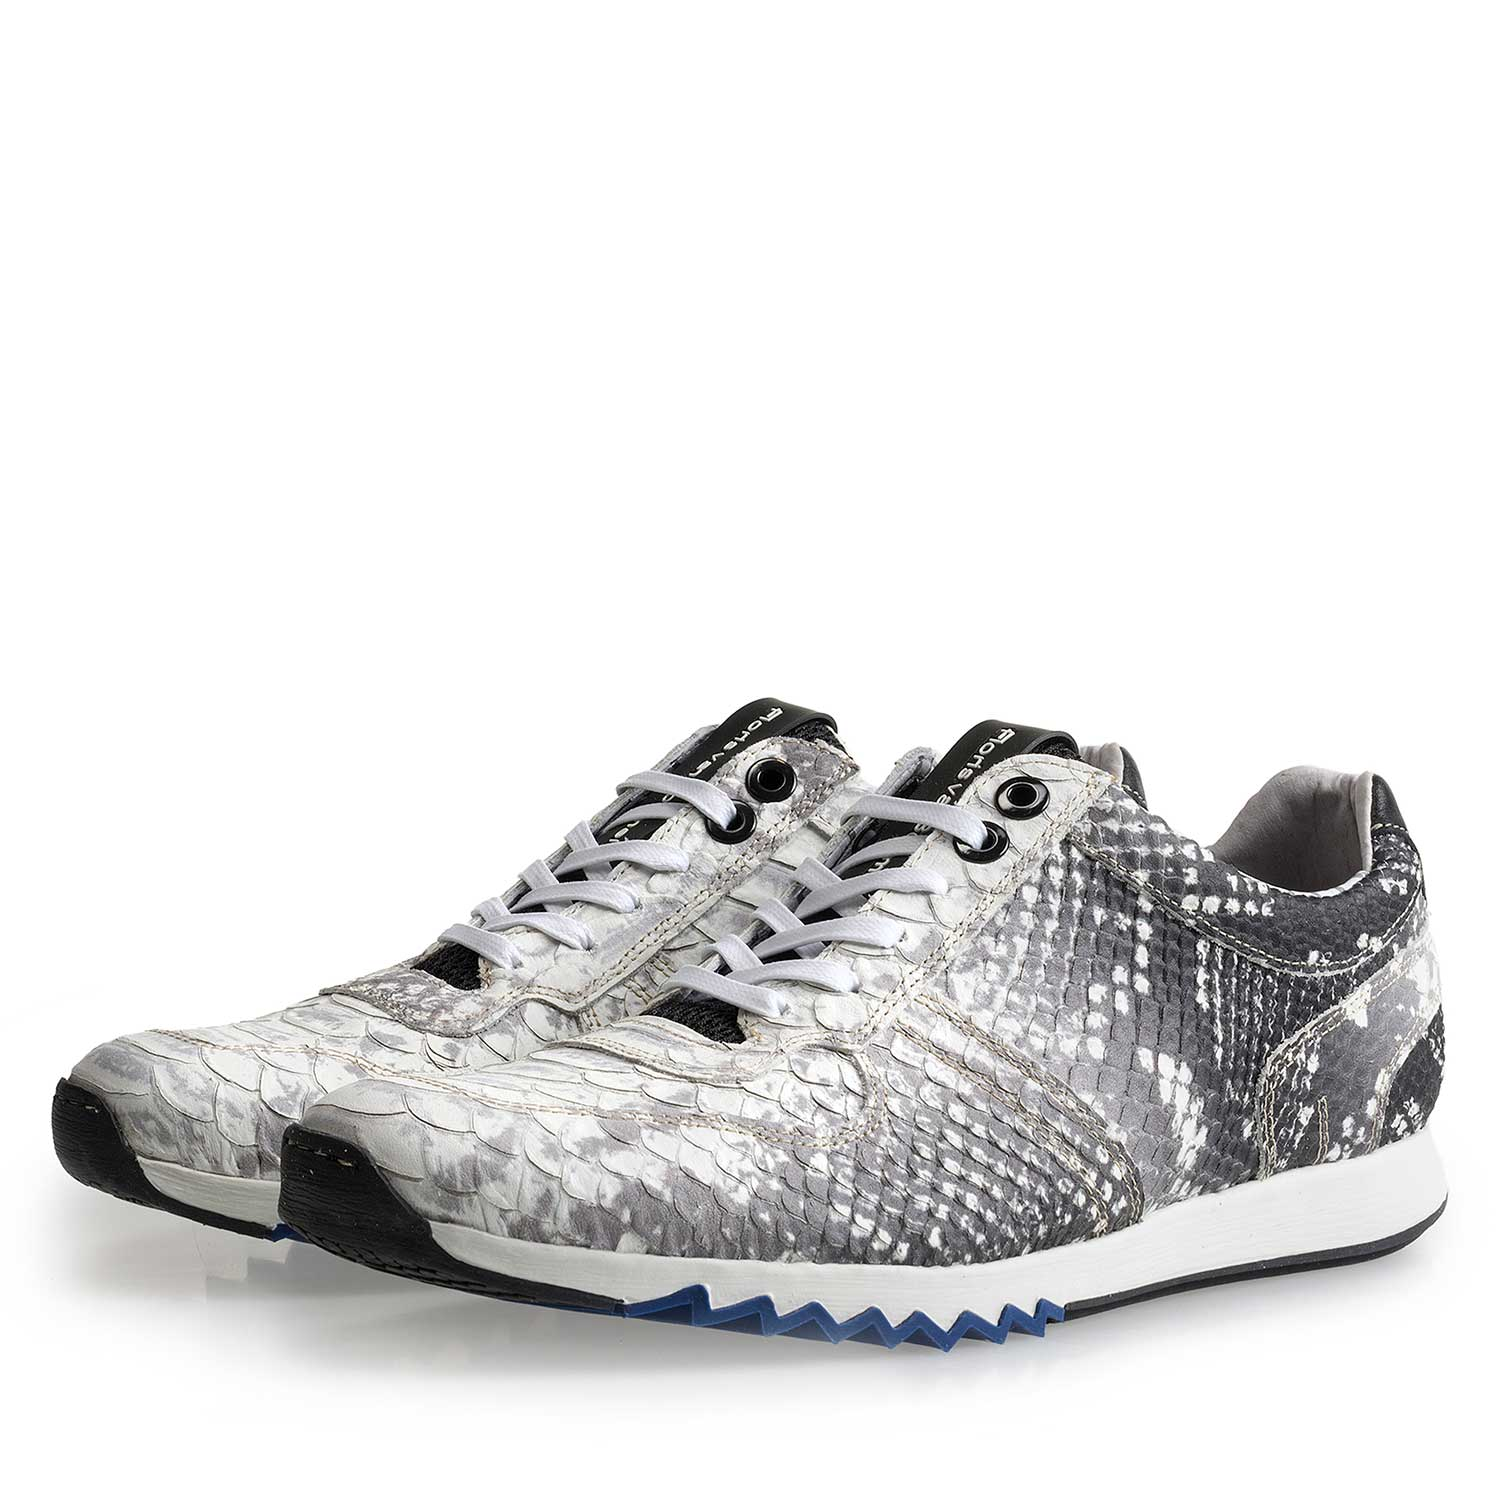 16227/13 - Grey leather sneaker with snake print